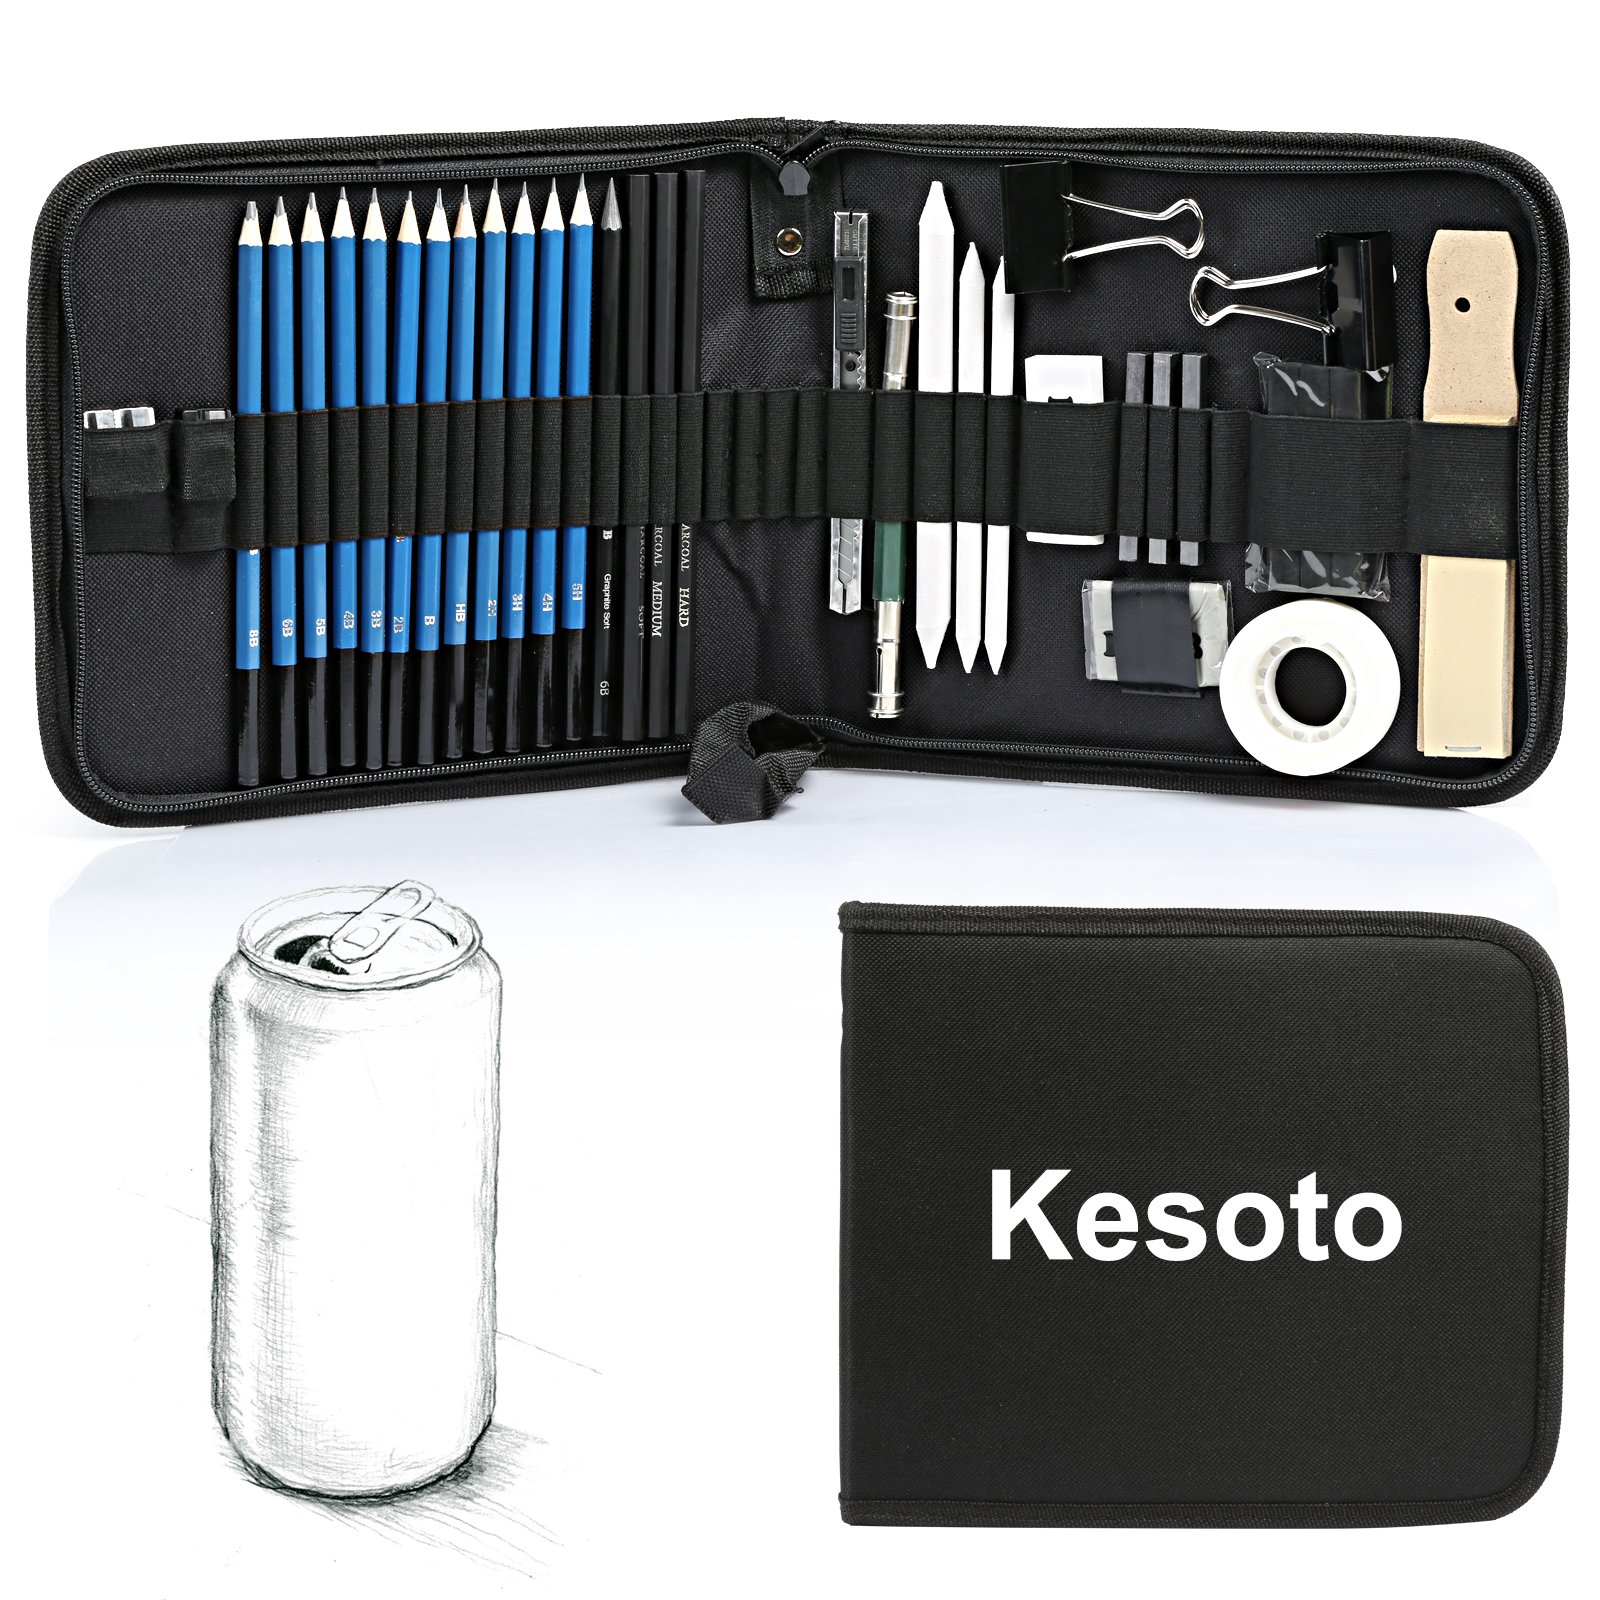 Kesoto 35 Pieces Art Supplies Drawing and Sketching Pencils Set with Graphite & Charcoal Pencils, Sticks and Tools